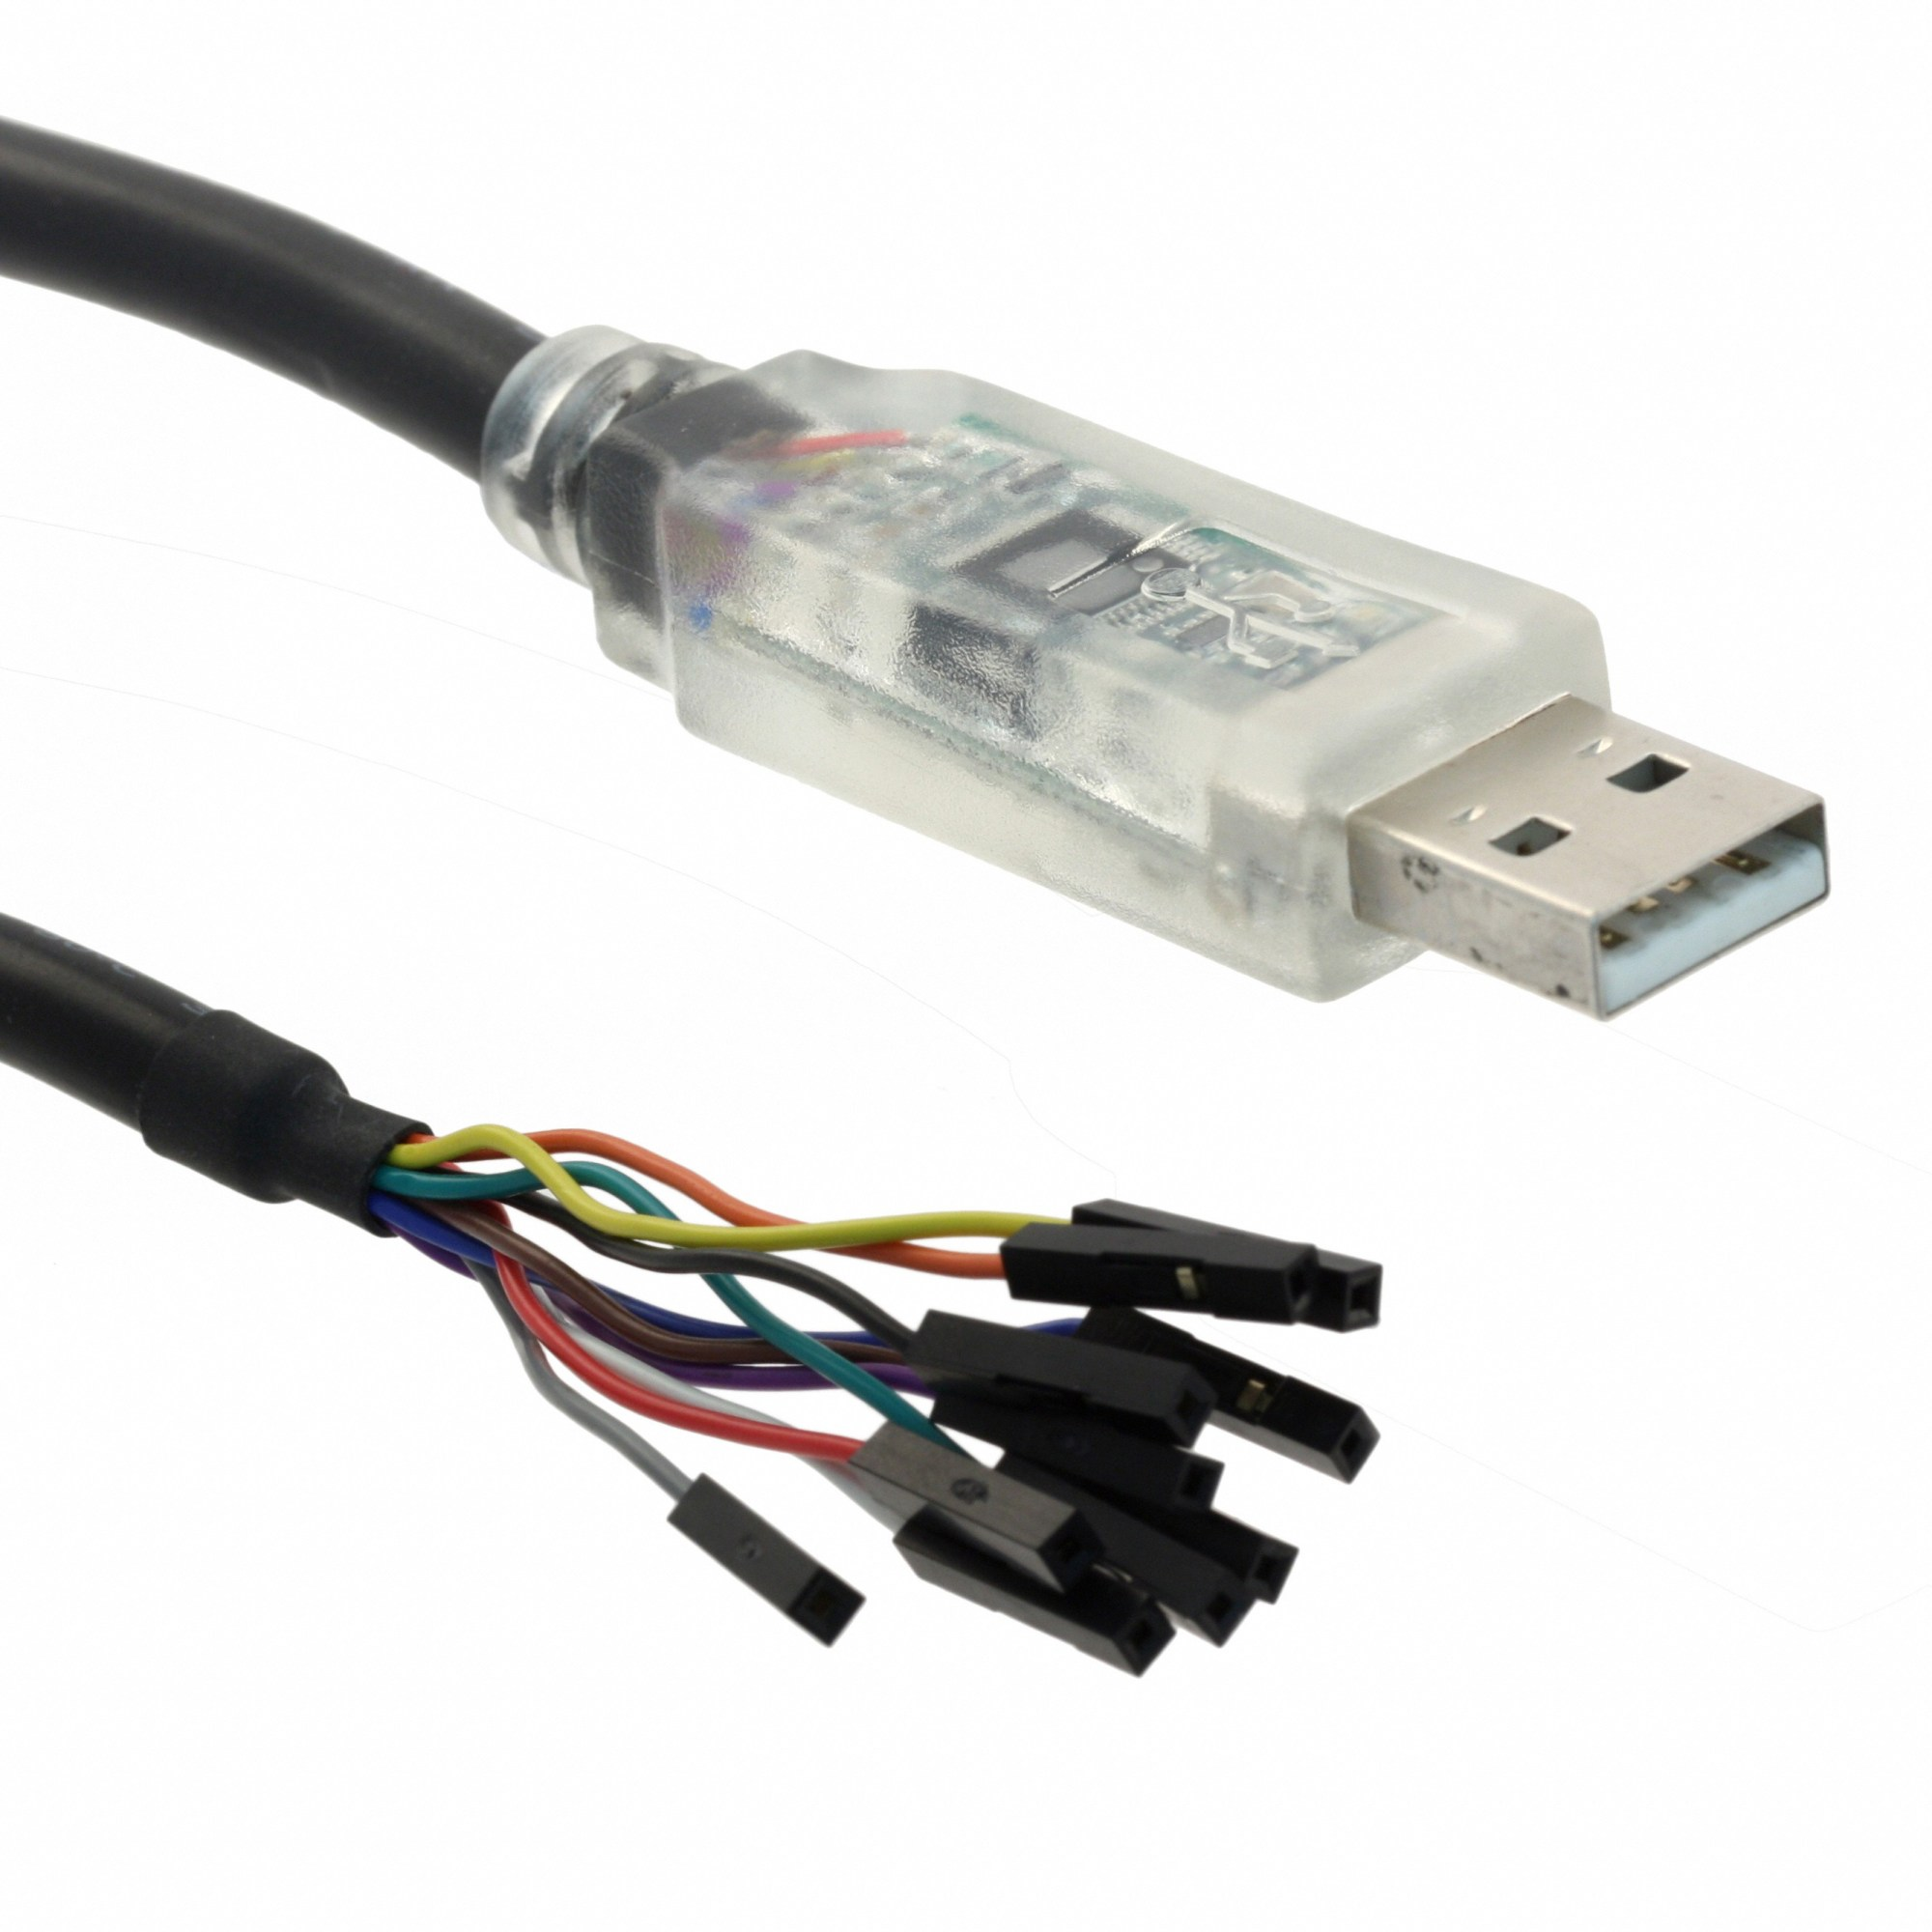 hight resolution of c232hm ddhsl 0 cable usb hs spi i2c jtag 3 3v ftdi future technology devices international rlx components s r o electronic components distributor